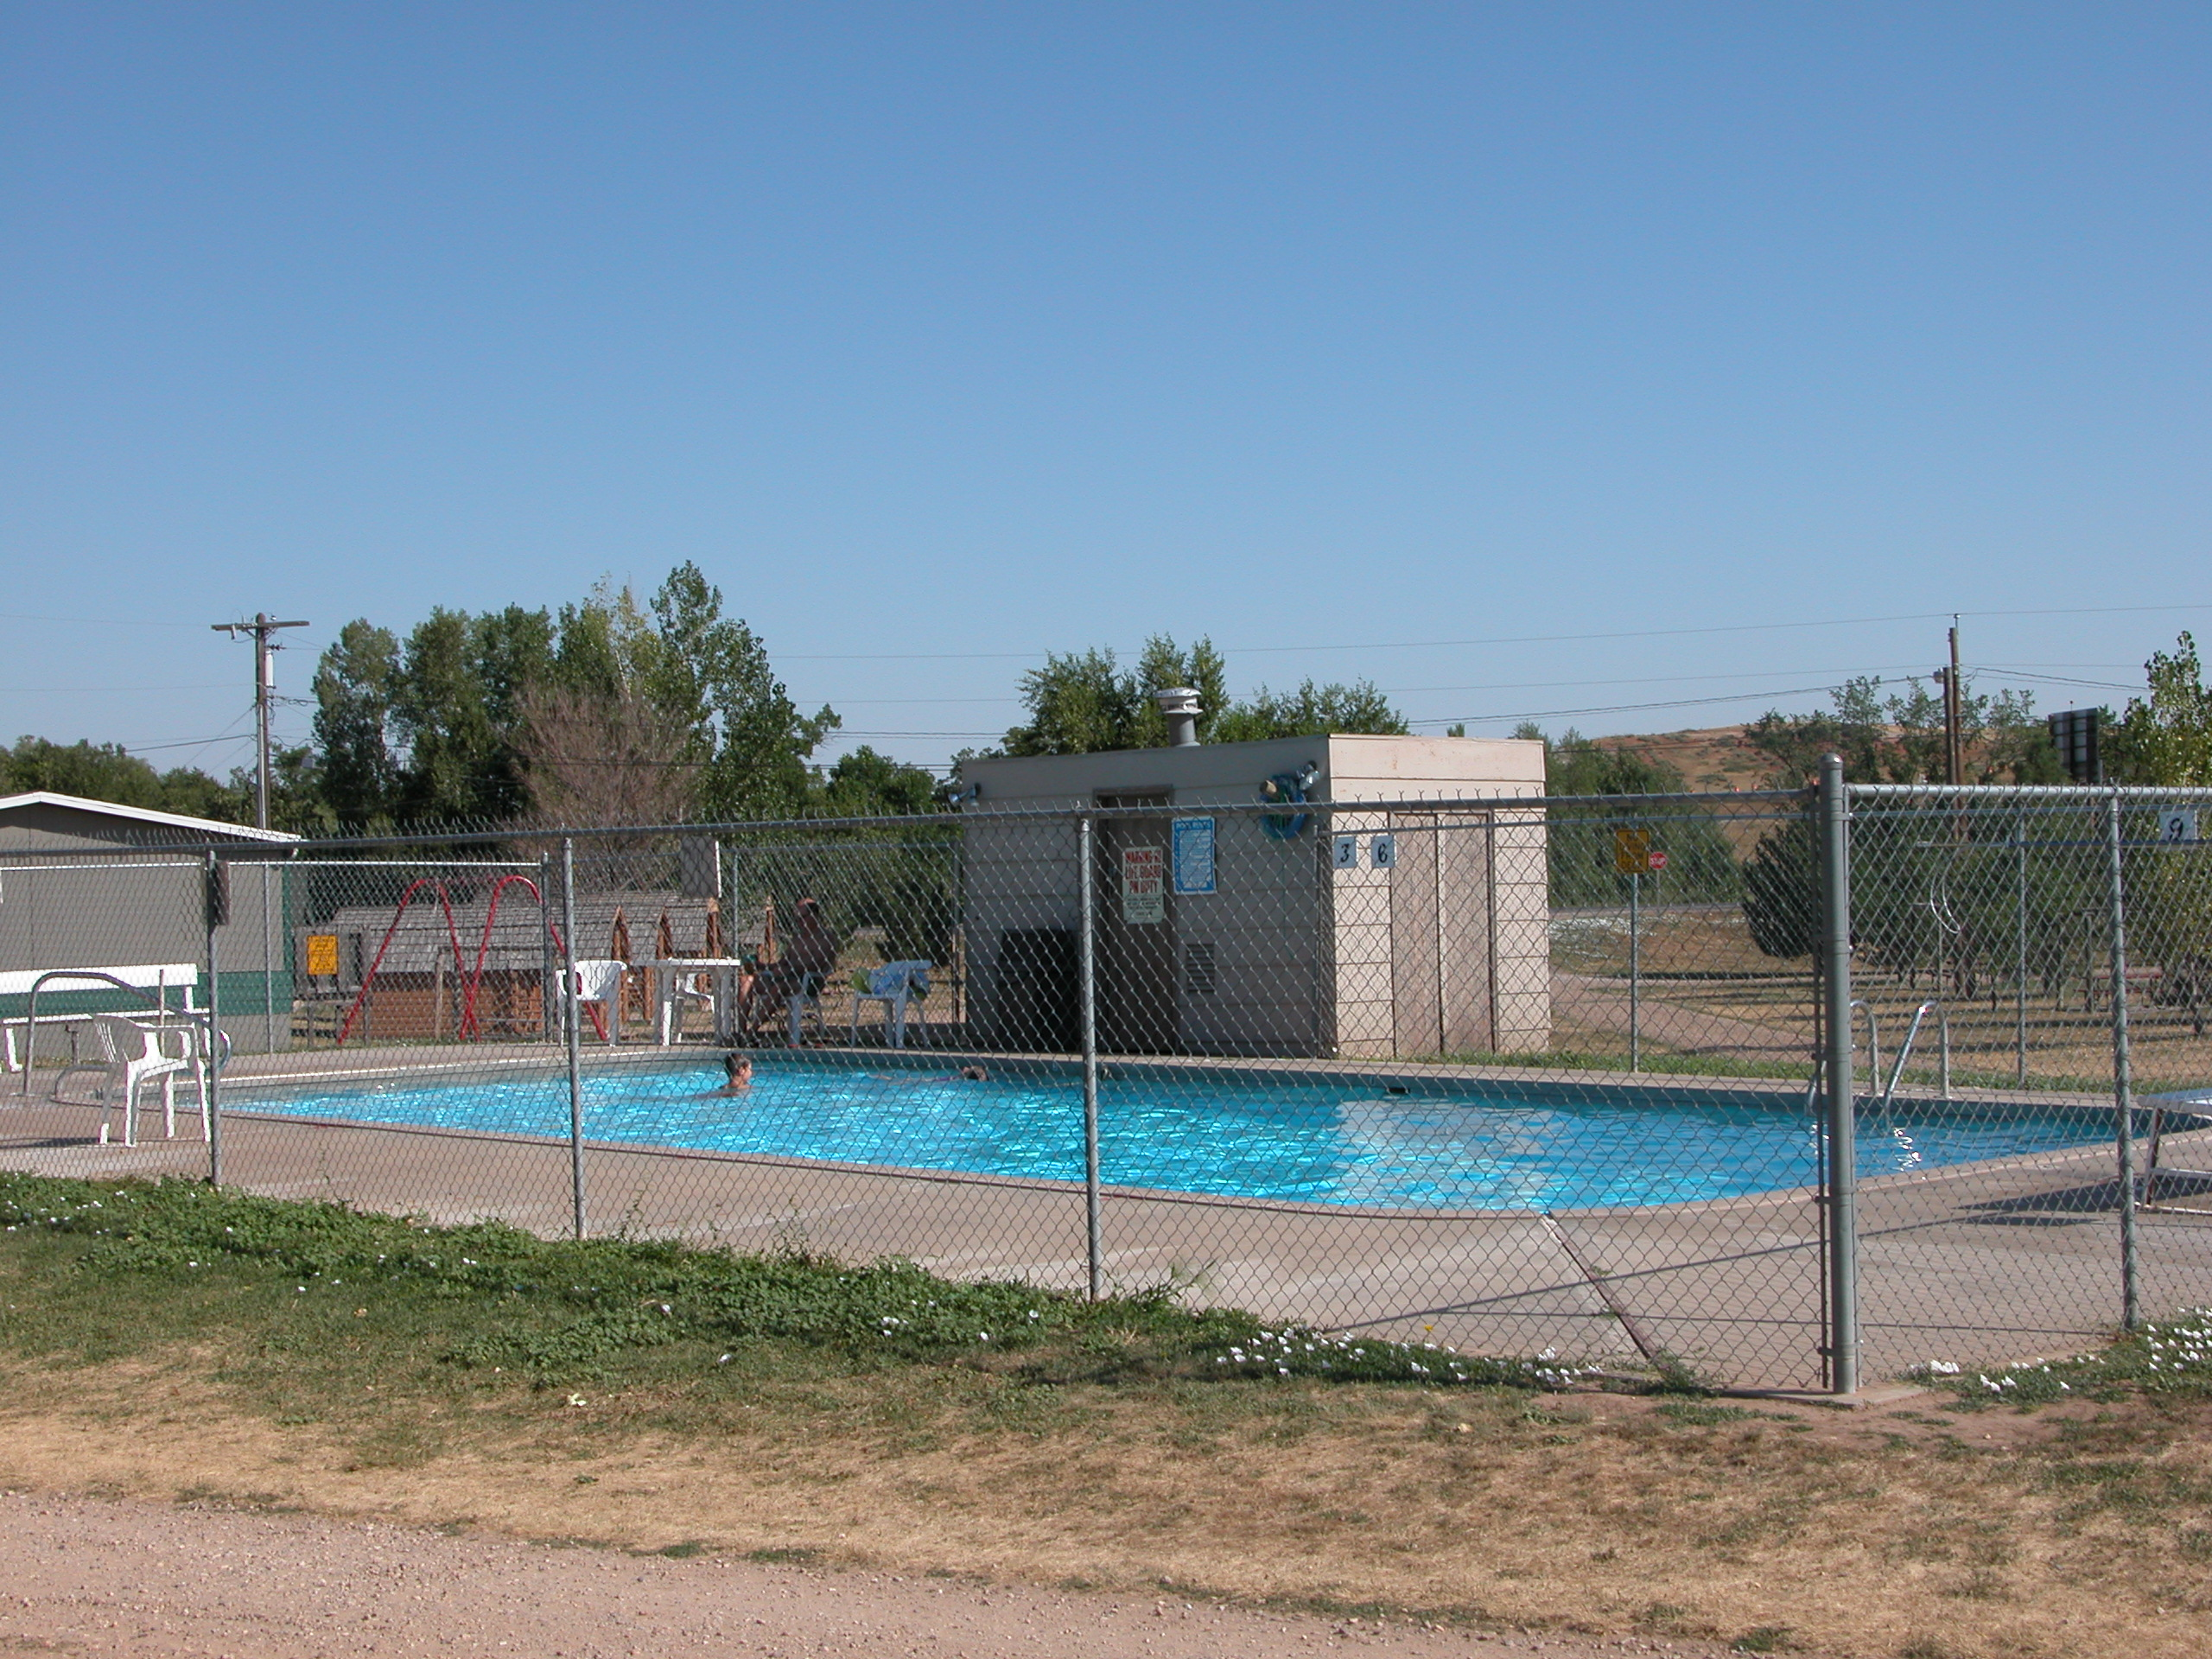 File 2003 08 16 Campground Swimming Pool In Spearfish South Wikimedia Commons